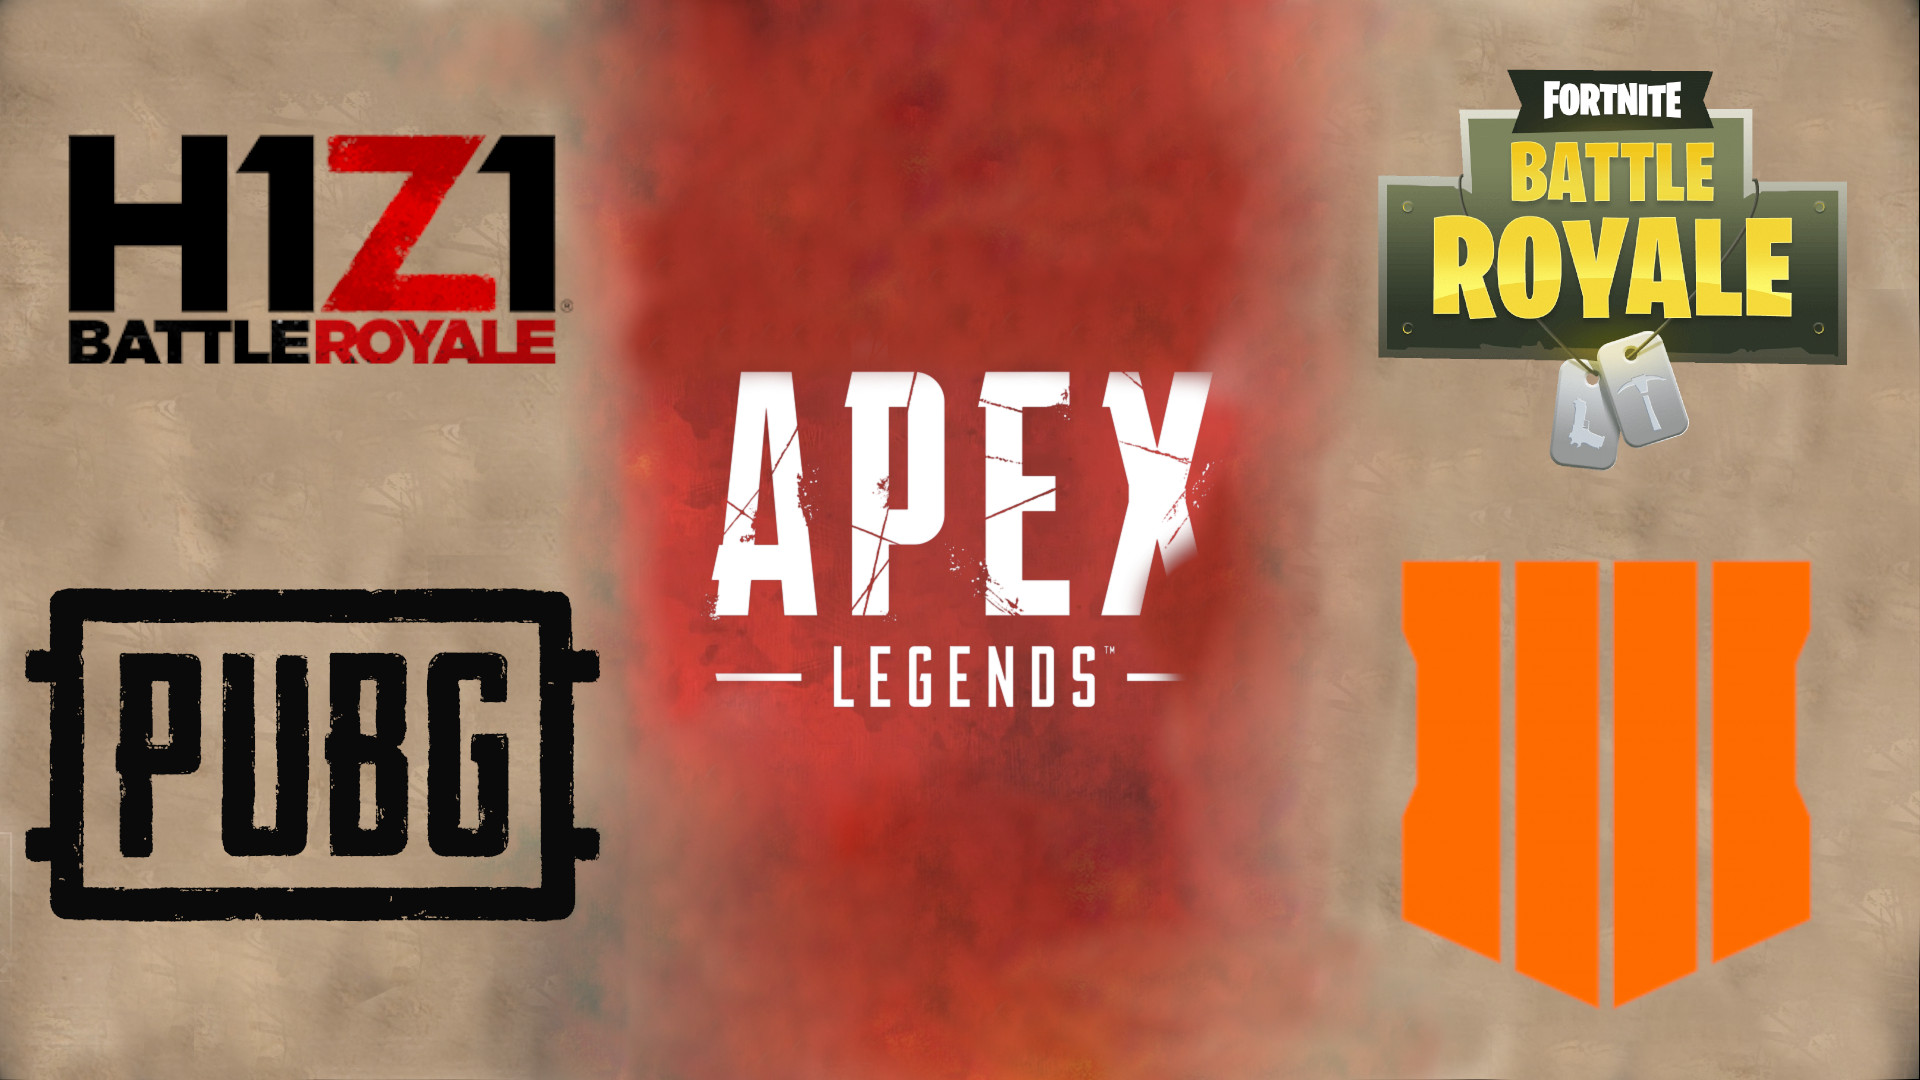 Photo of H1Z1, PUBG, Fortnite, Blackout, Apex Legends… What's next?